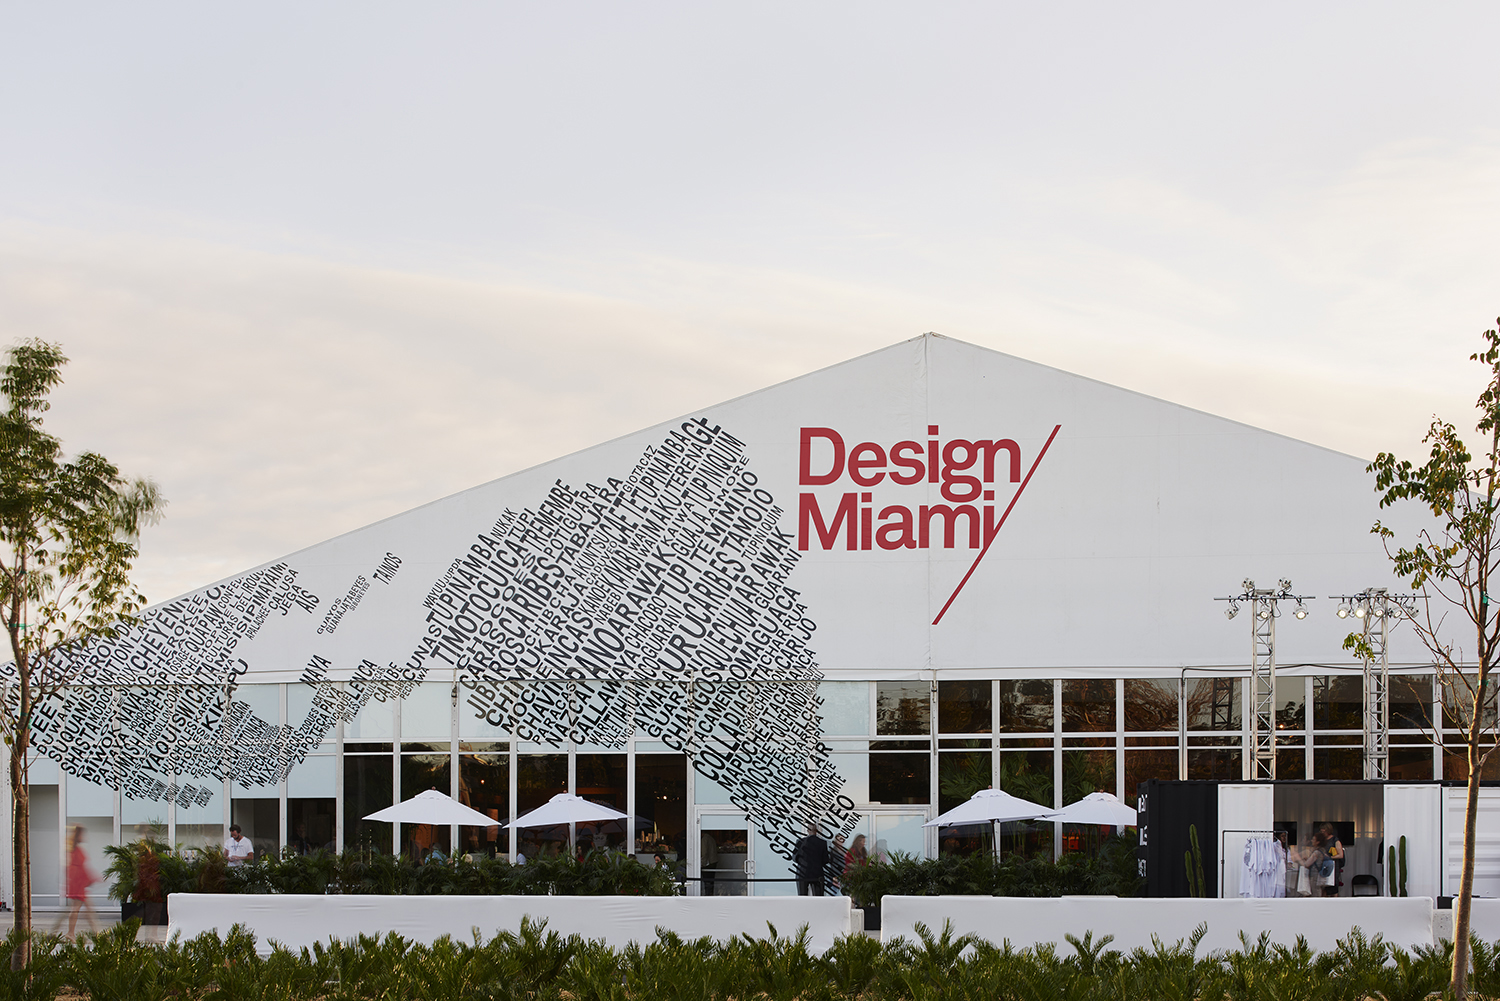 design events 2020 Design Events 2020: New Dates update your calendar new dates for interior design events 3